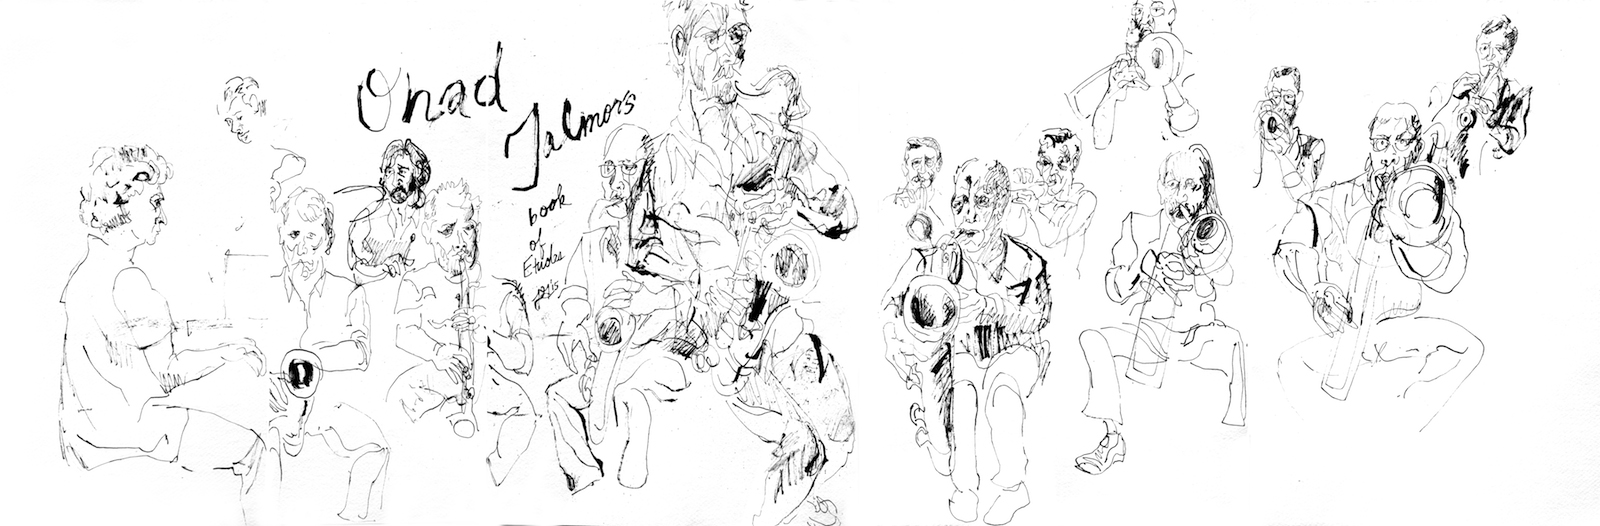 Ohad talmor's book of etudes orchestra at jazz gallery 2015